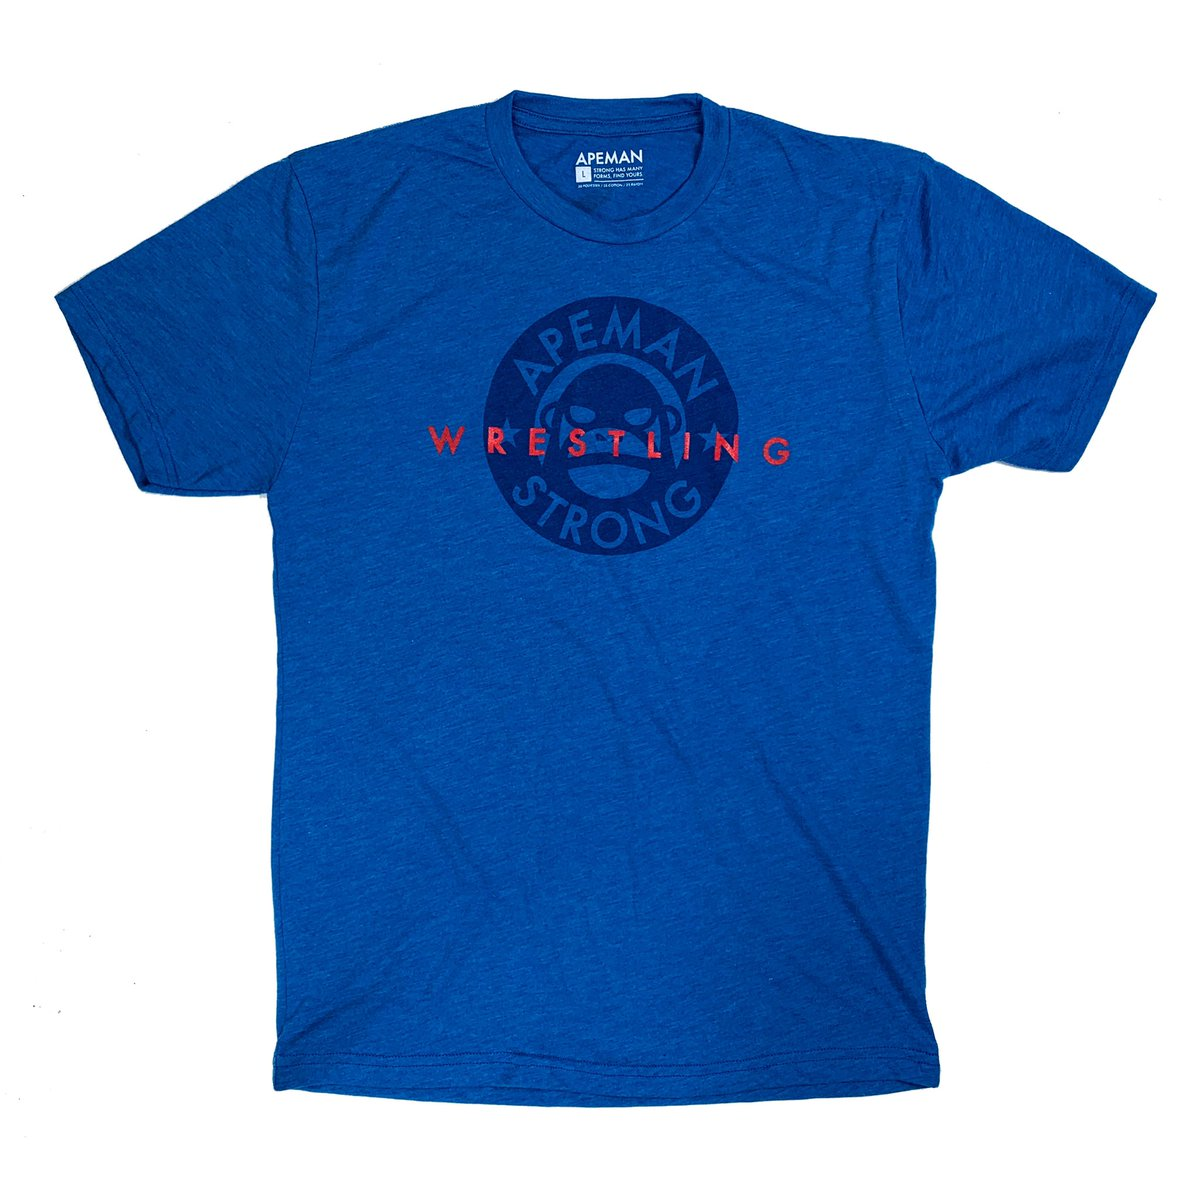 New WRESTLING Tee. apemanstrong.com/new-releases/w…